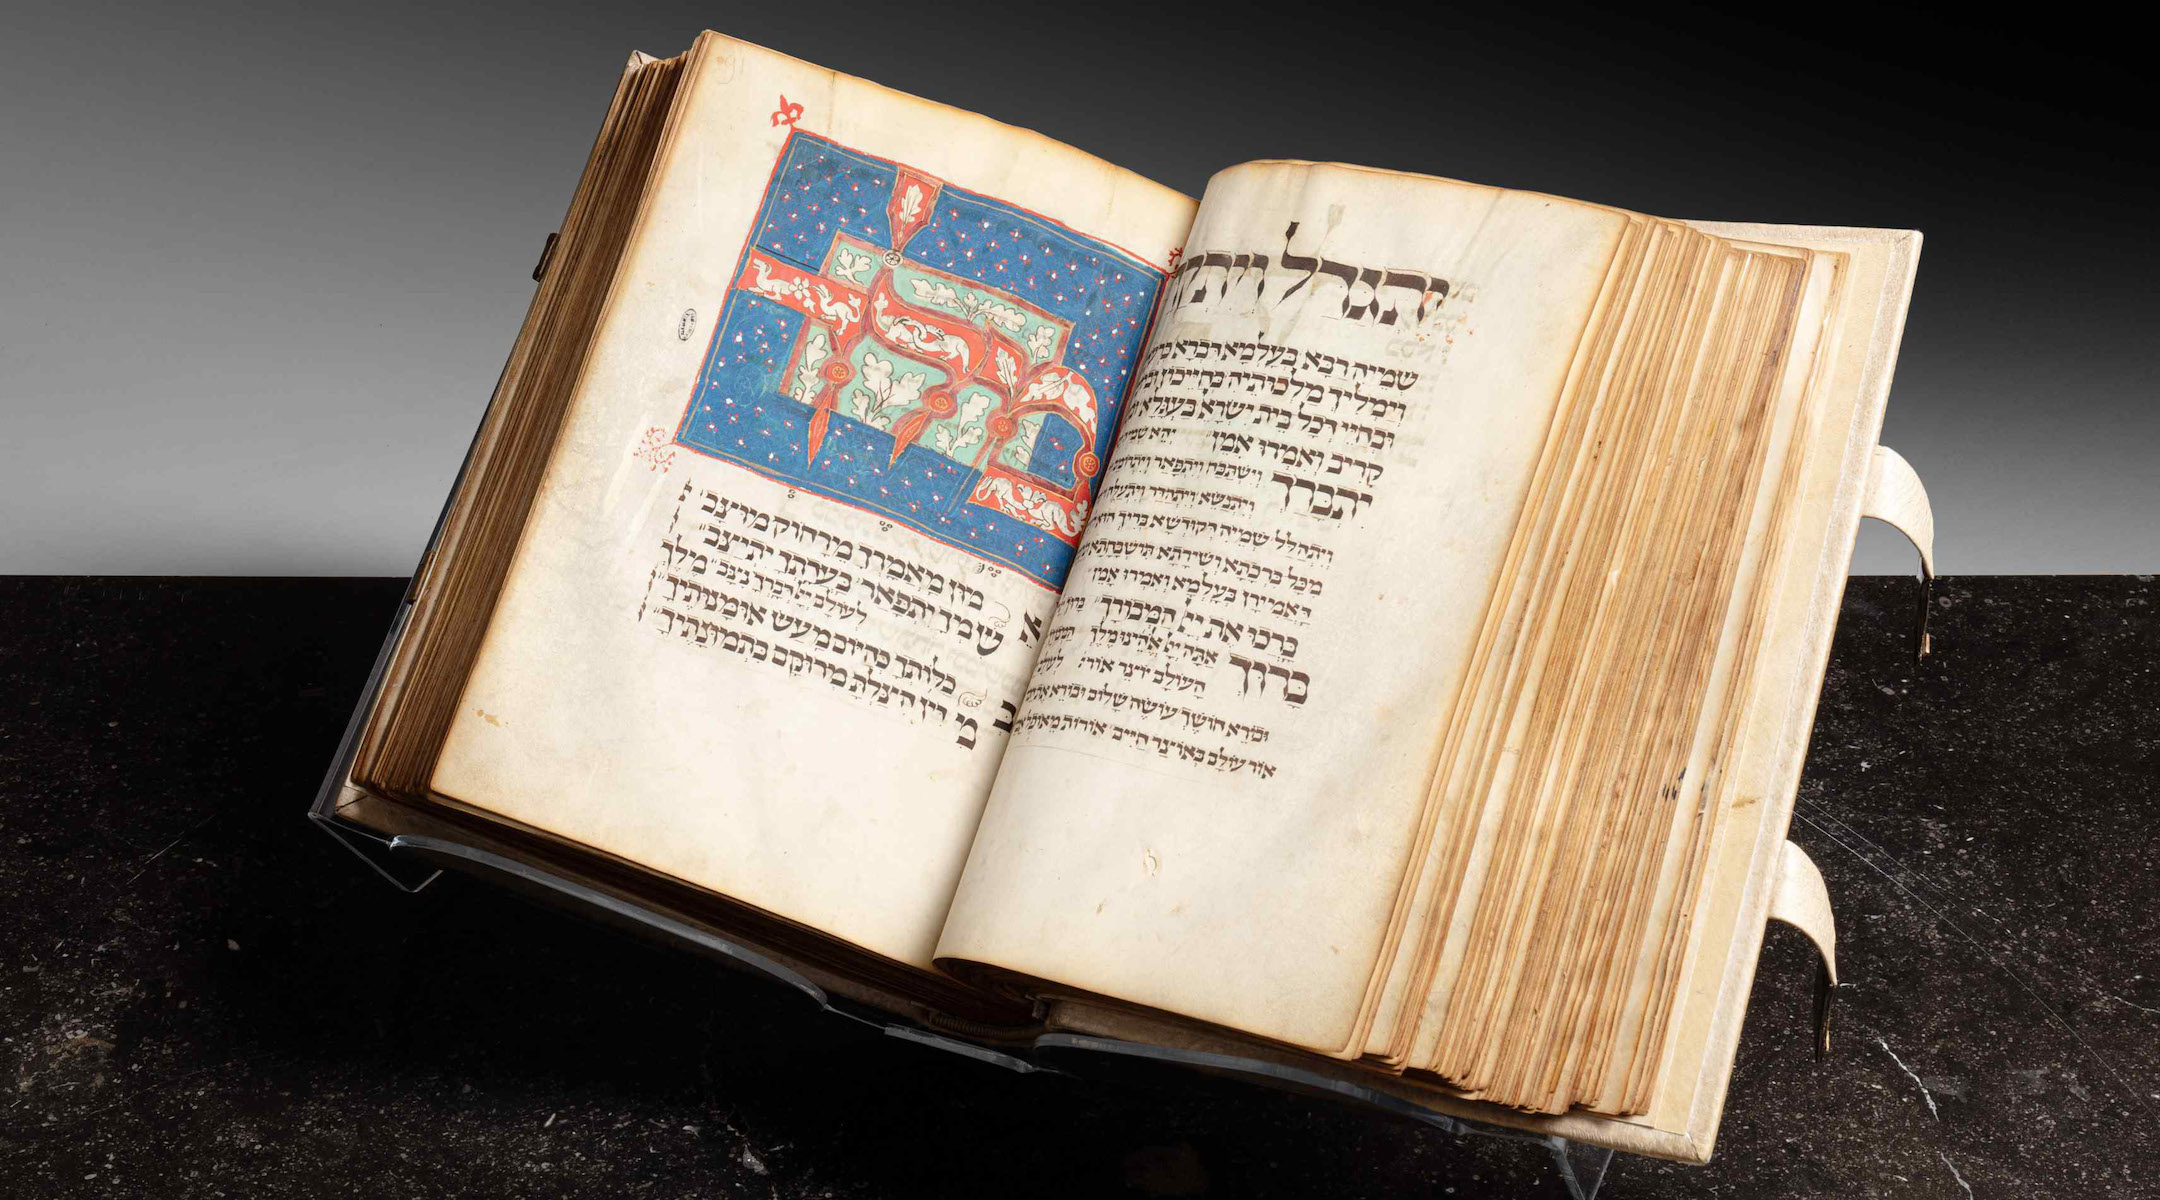 A 700-year-old Rosh Hashanah prayerbook is going on auction for $4 million